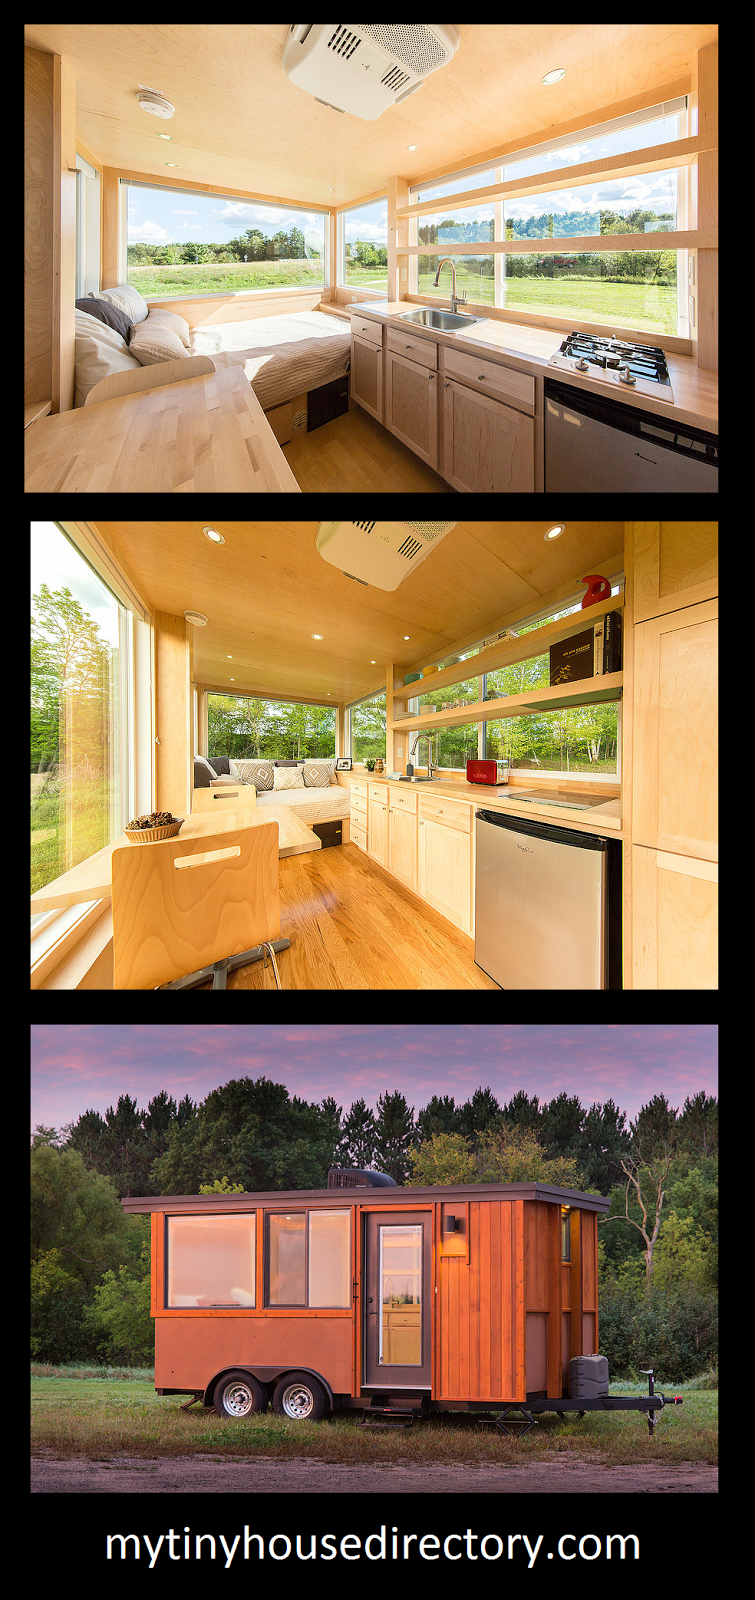 mytinyhousedirectory: Escape Vista and Vista Go | Tiny House Luv ...